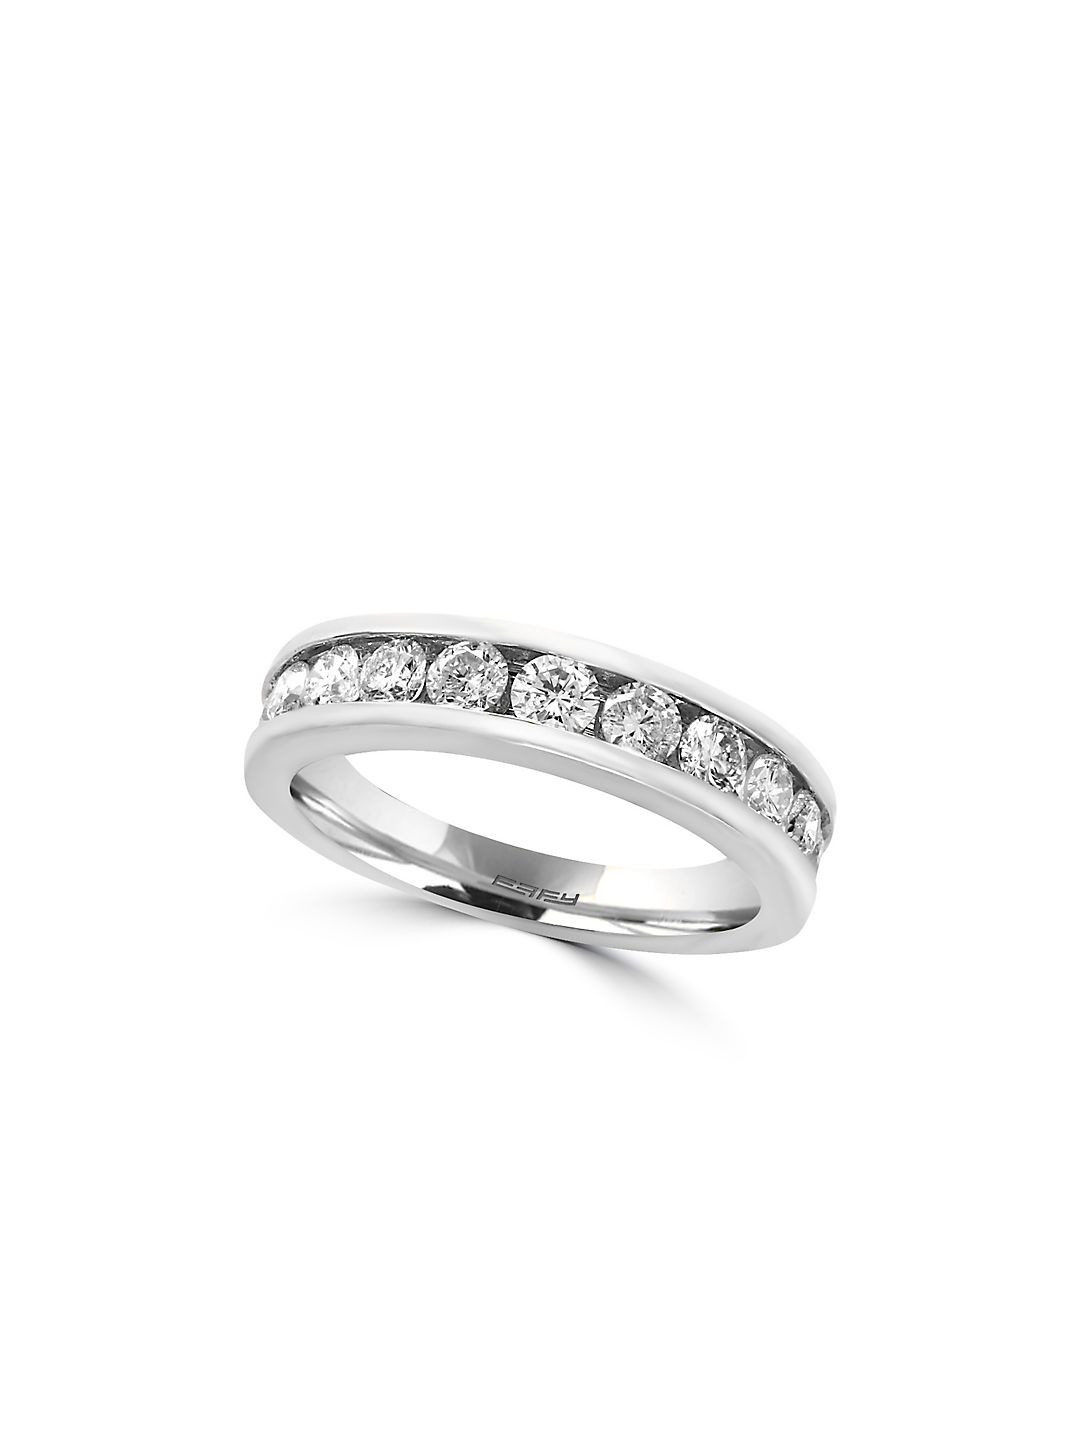 Pave Classica 14K White Gold & Diamond Ring